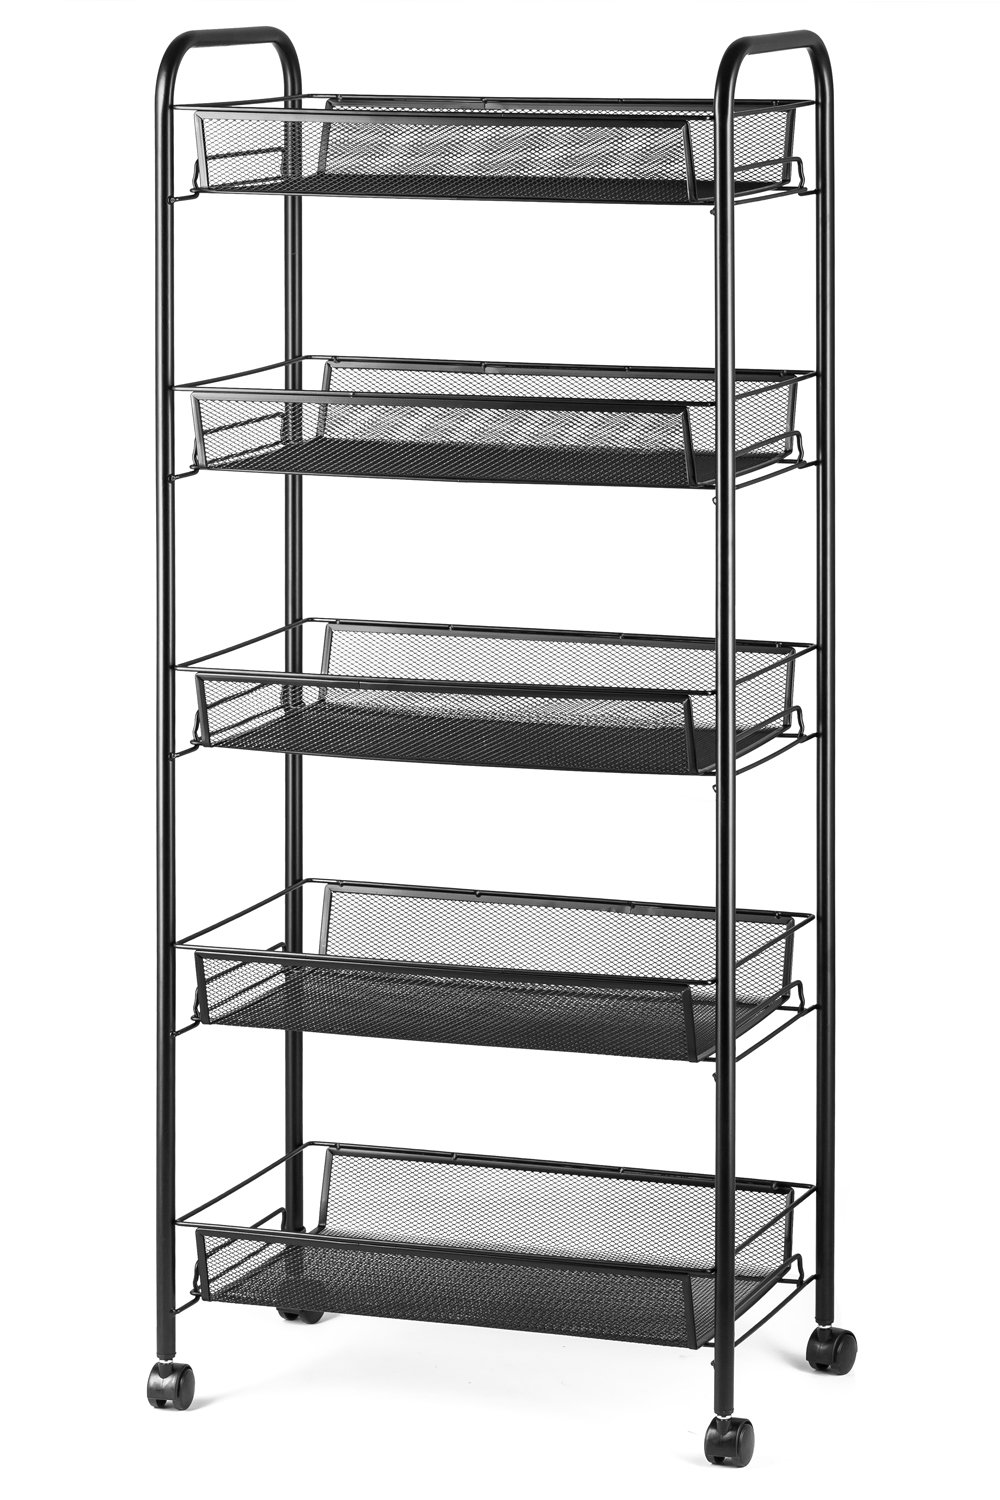 Halter 5-Tier Rolling Basket Stand, Full Metal Rolling Trolley for Kitchen Bathroom – Five Tier Storage Cart w Shelves Wheels – 40 X 17.25 Black